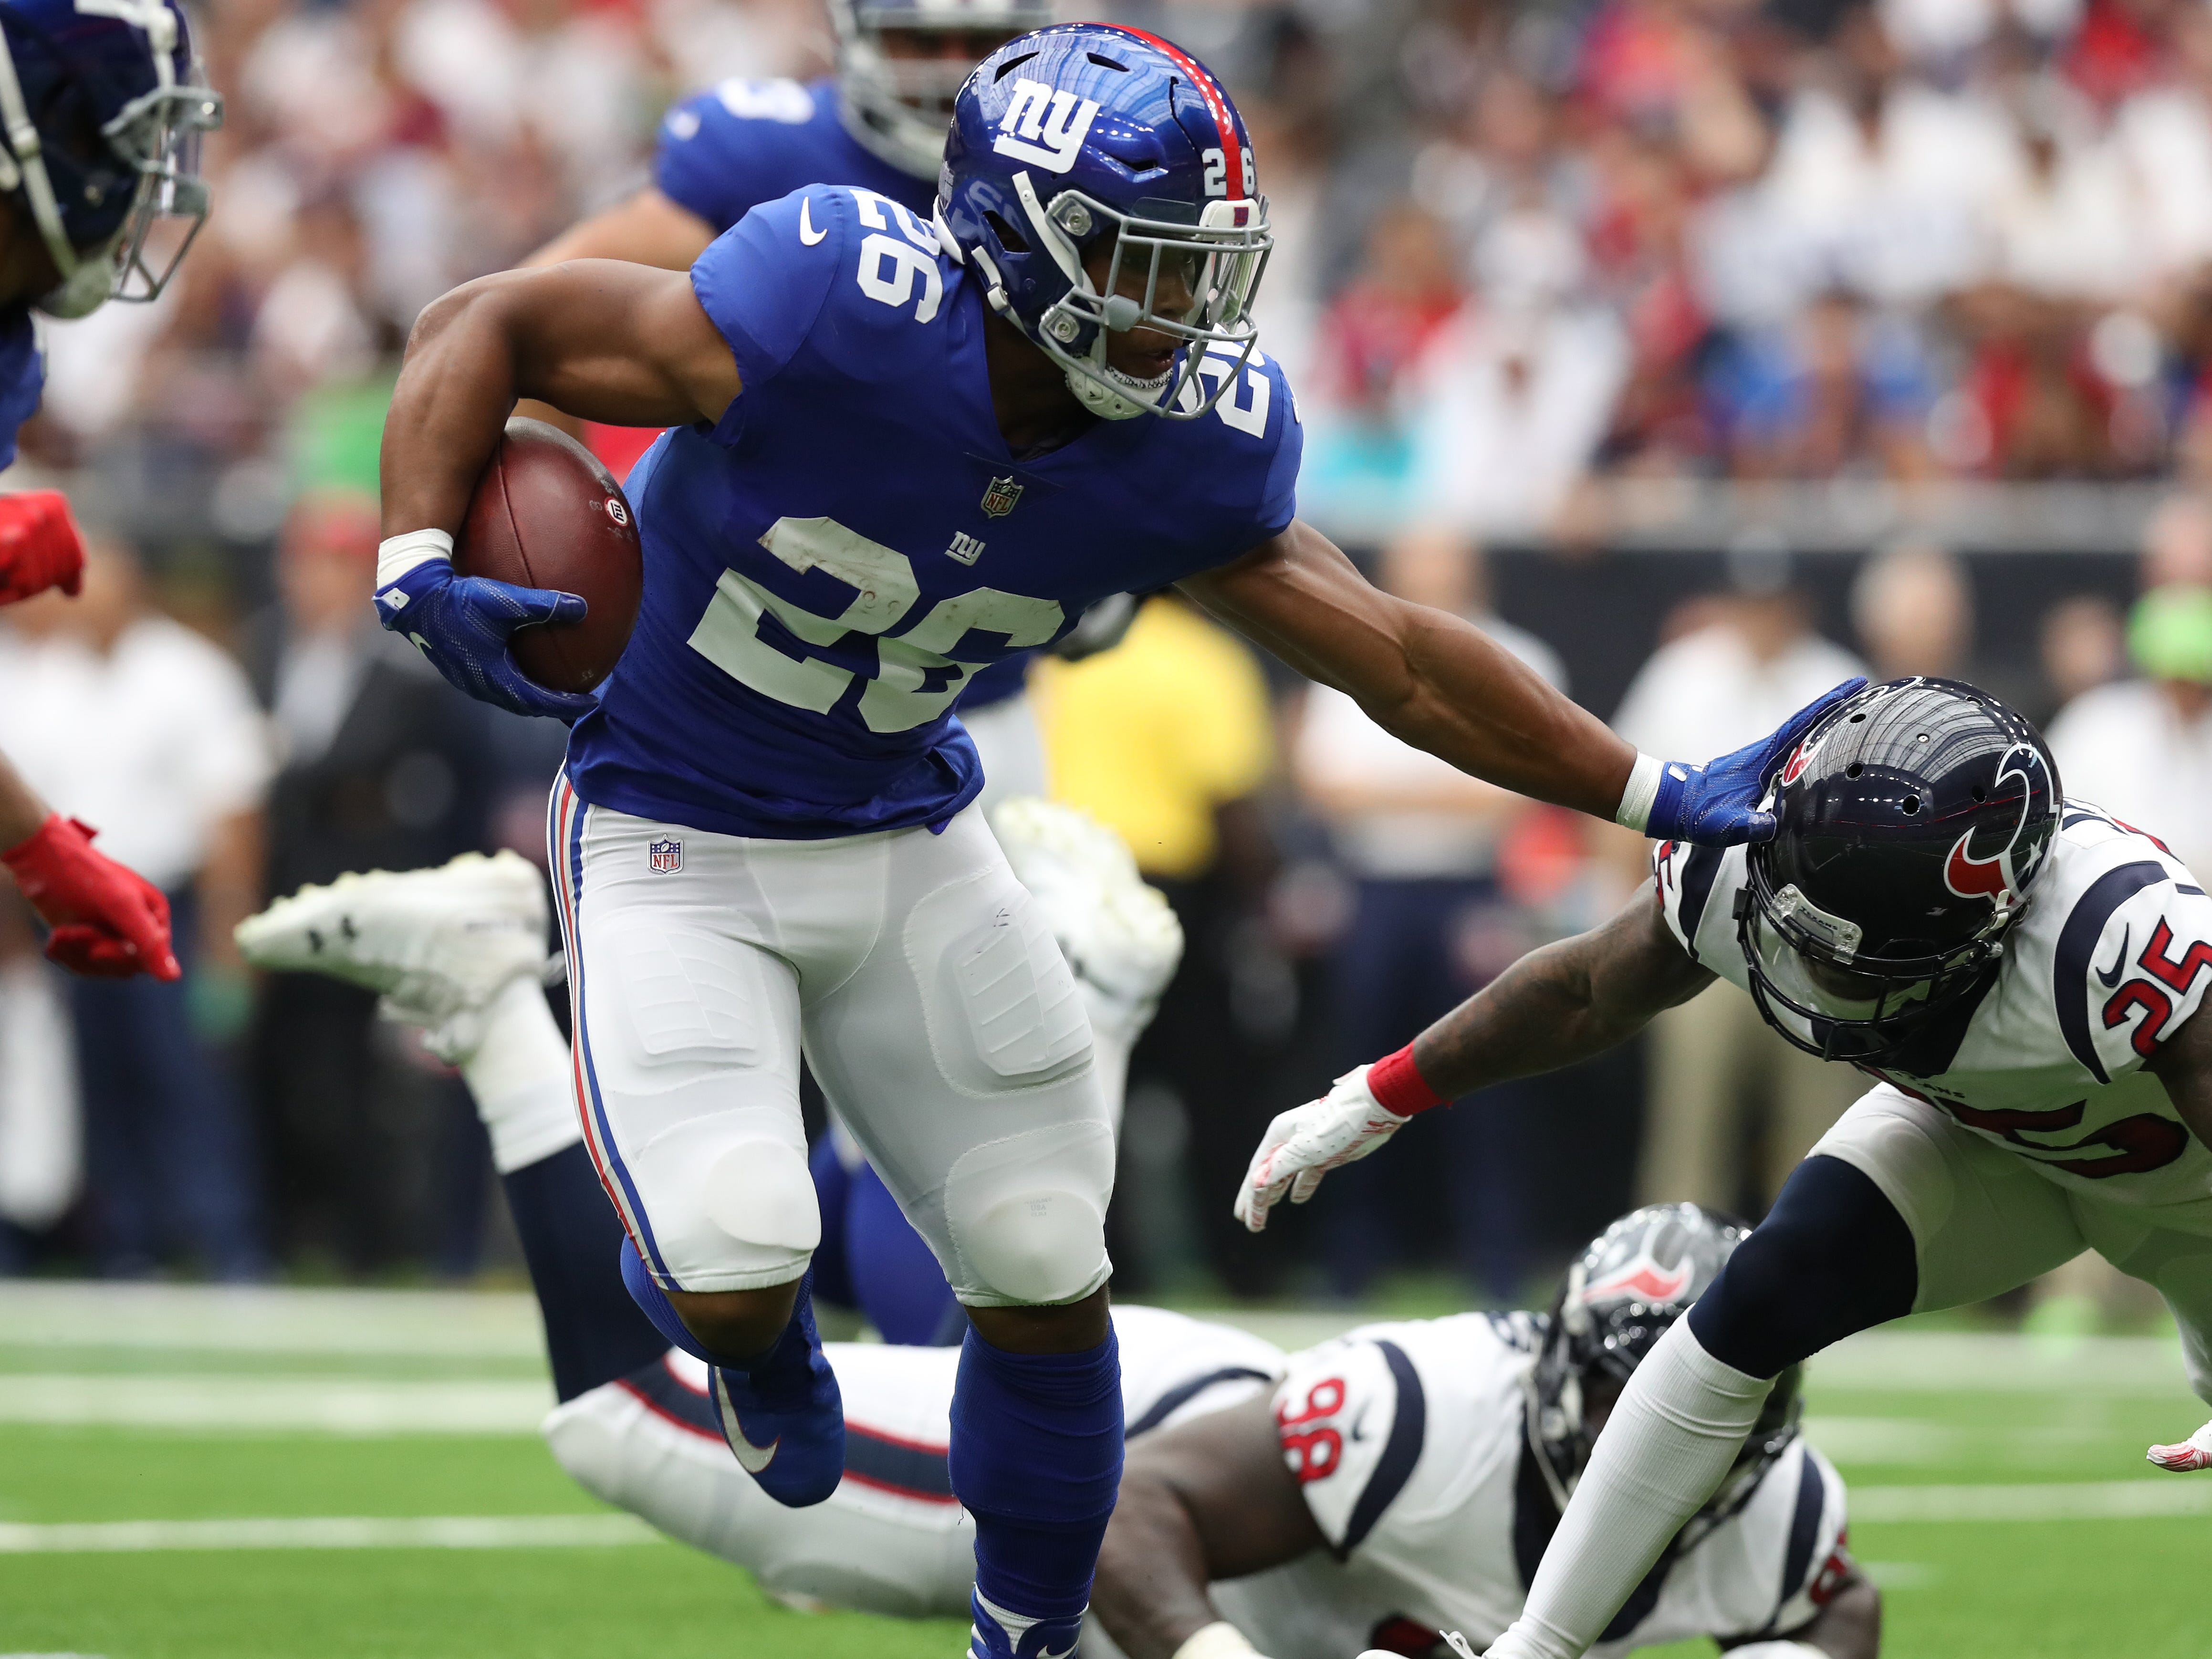 New York Giants running back Saquon Barkley runs with the ball for a first quarter touchdown against Houston Texans safety Kareem Jackson at NRG Stadium.